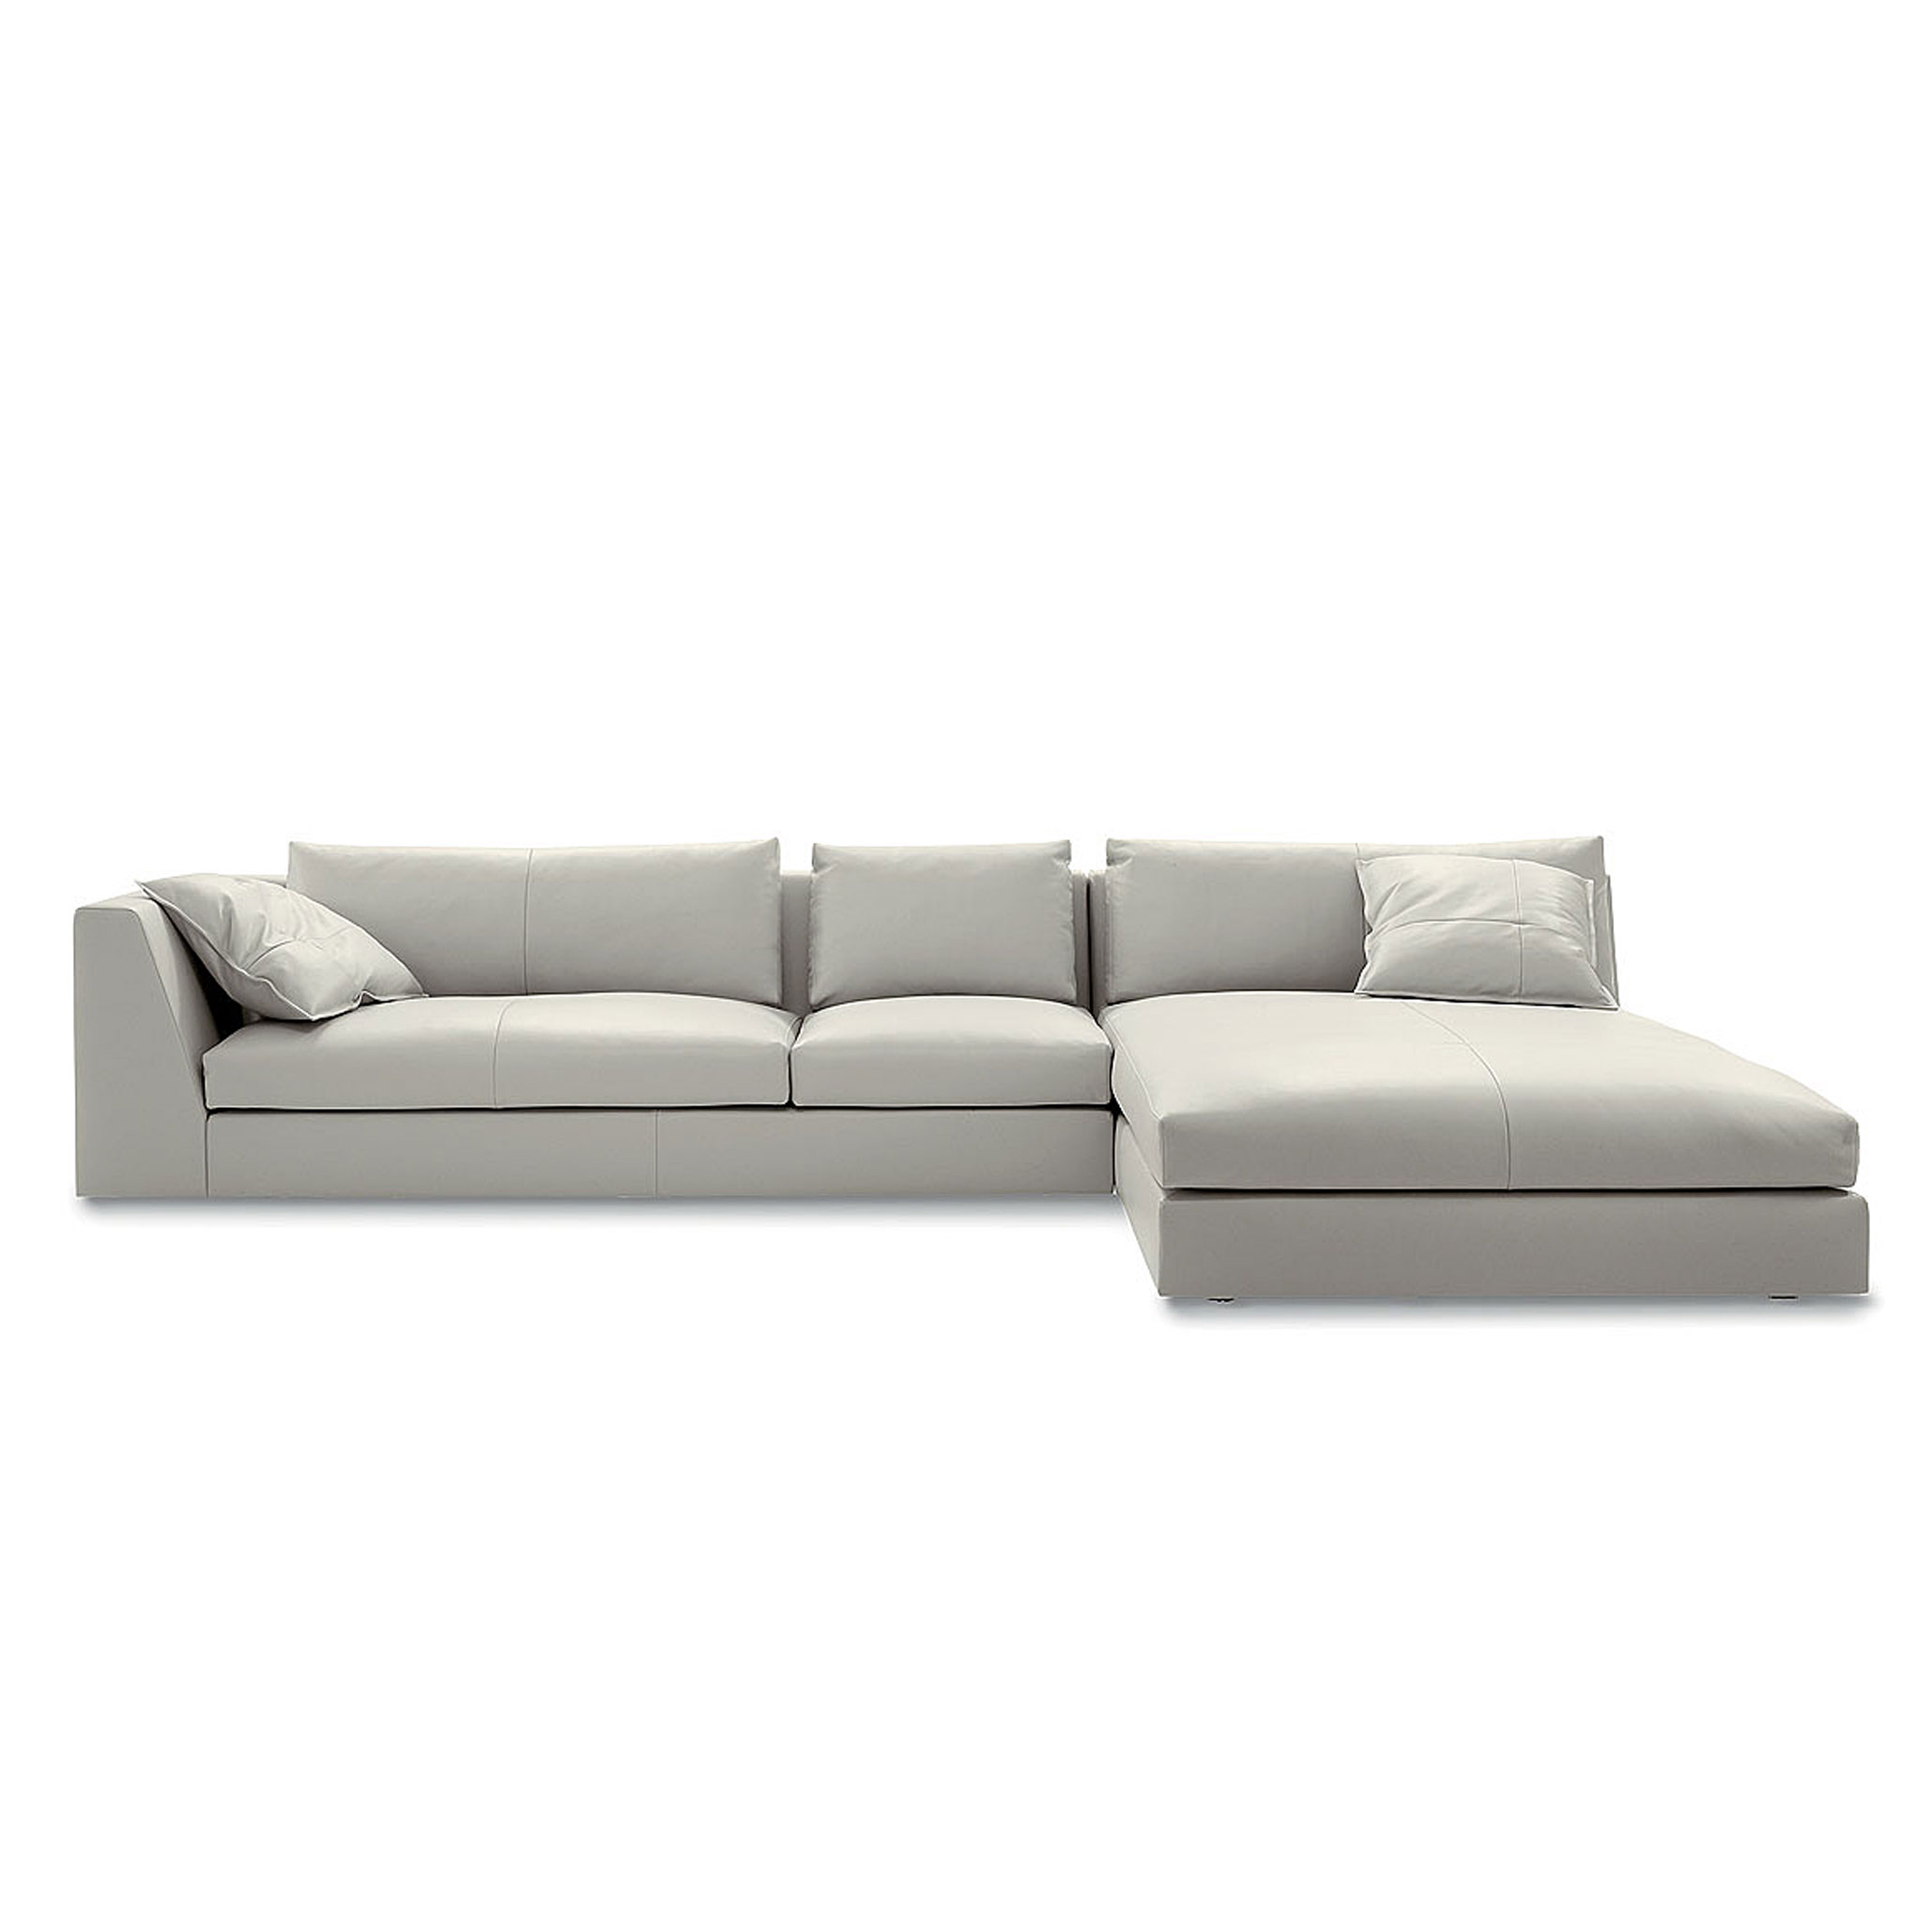 Modular Furniture Sofa: Exclusif Sofa Modular Sofa